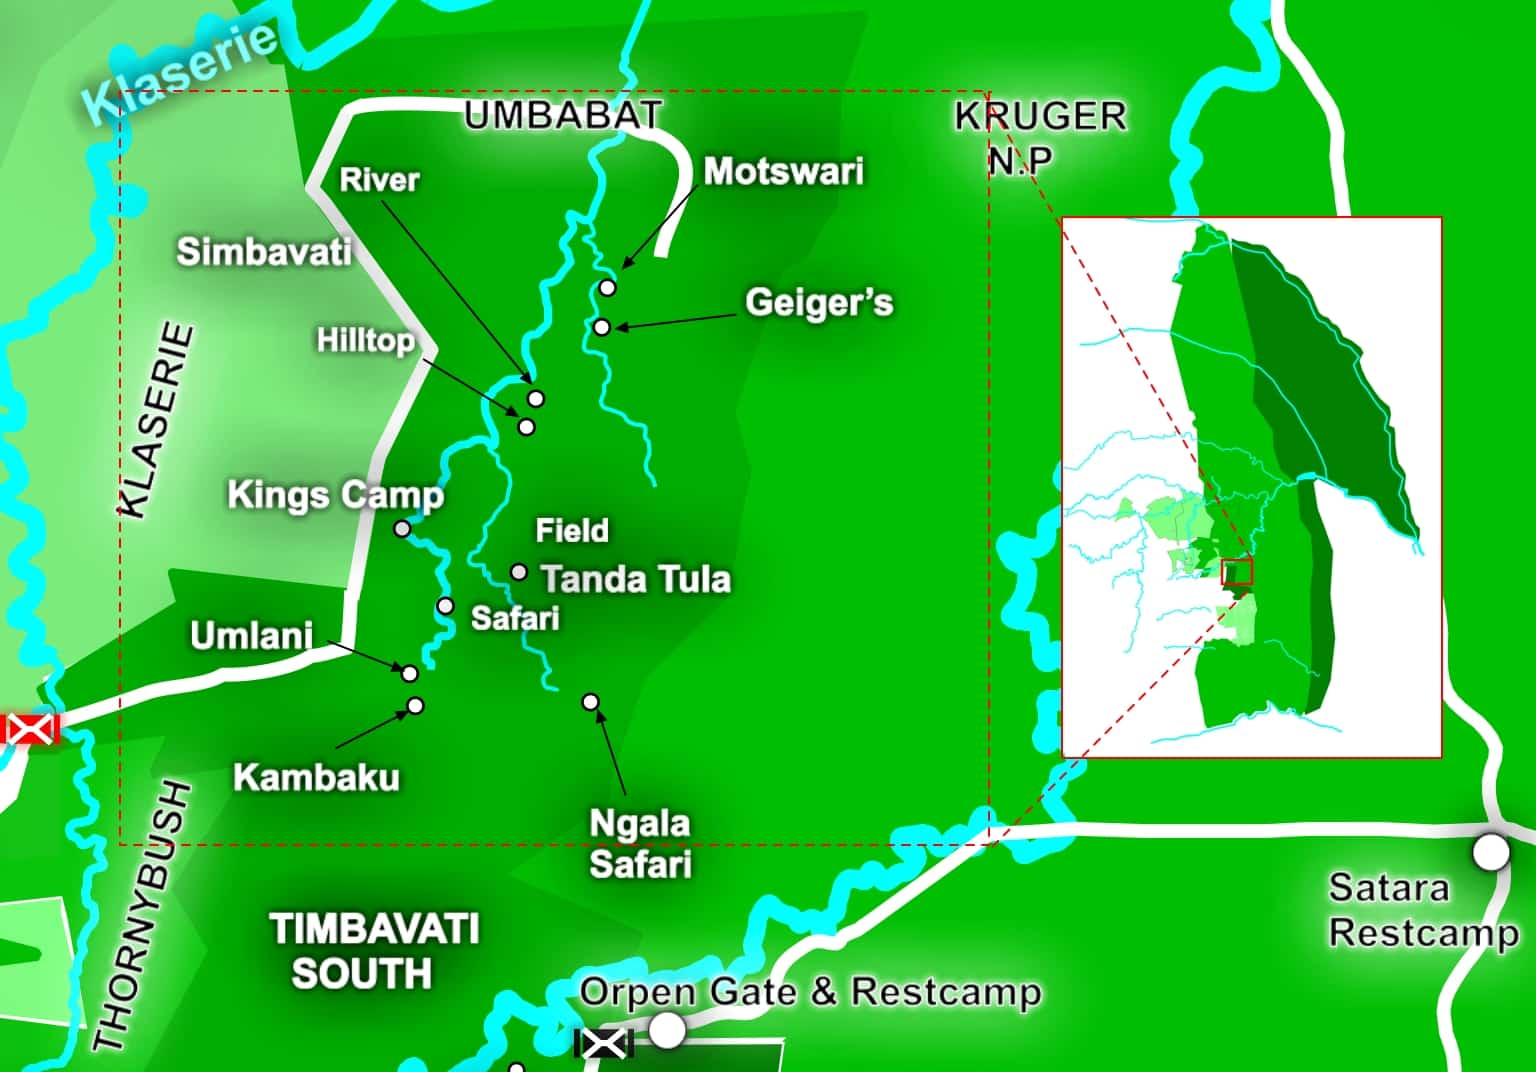 k2c Timbavati north map